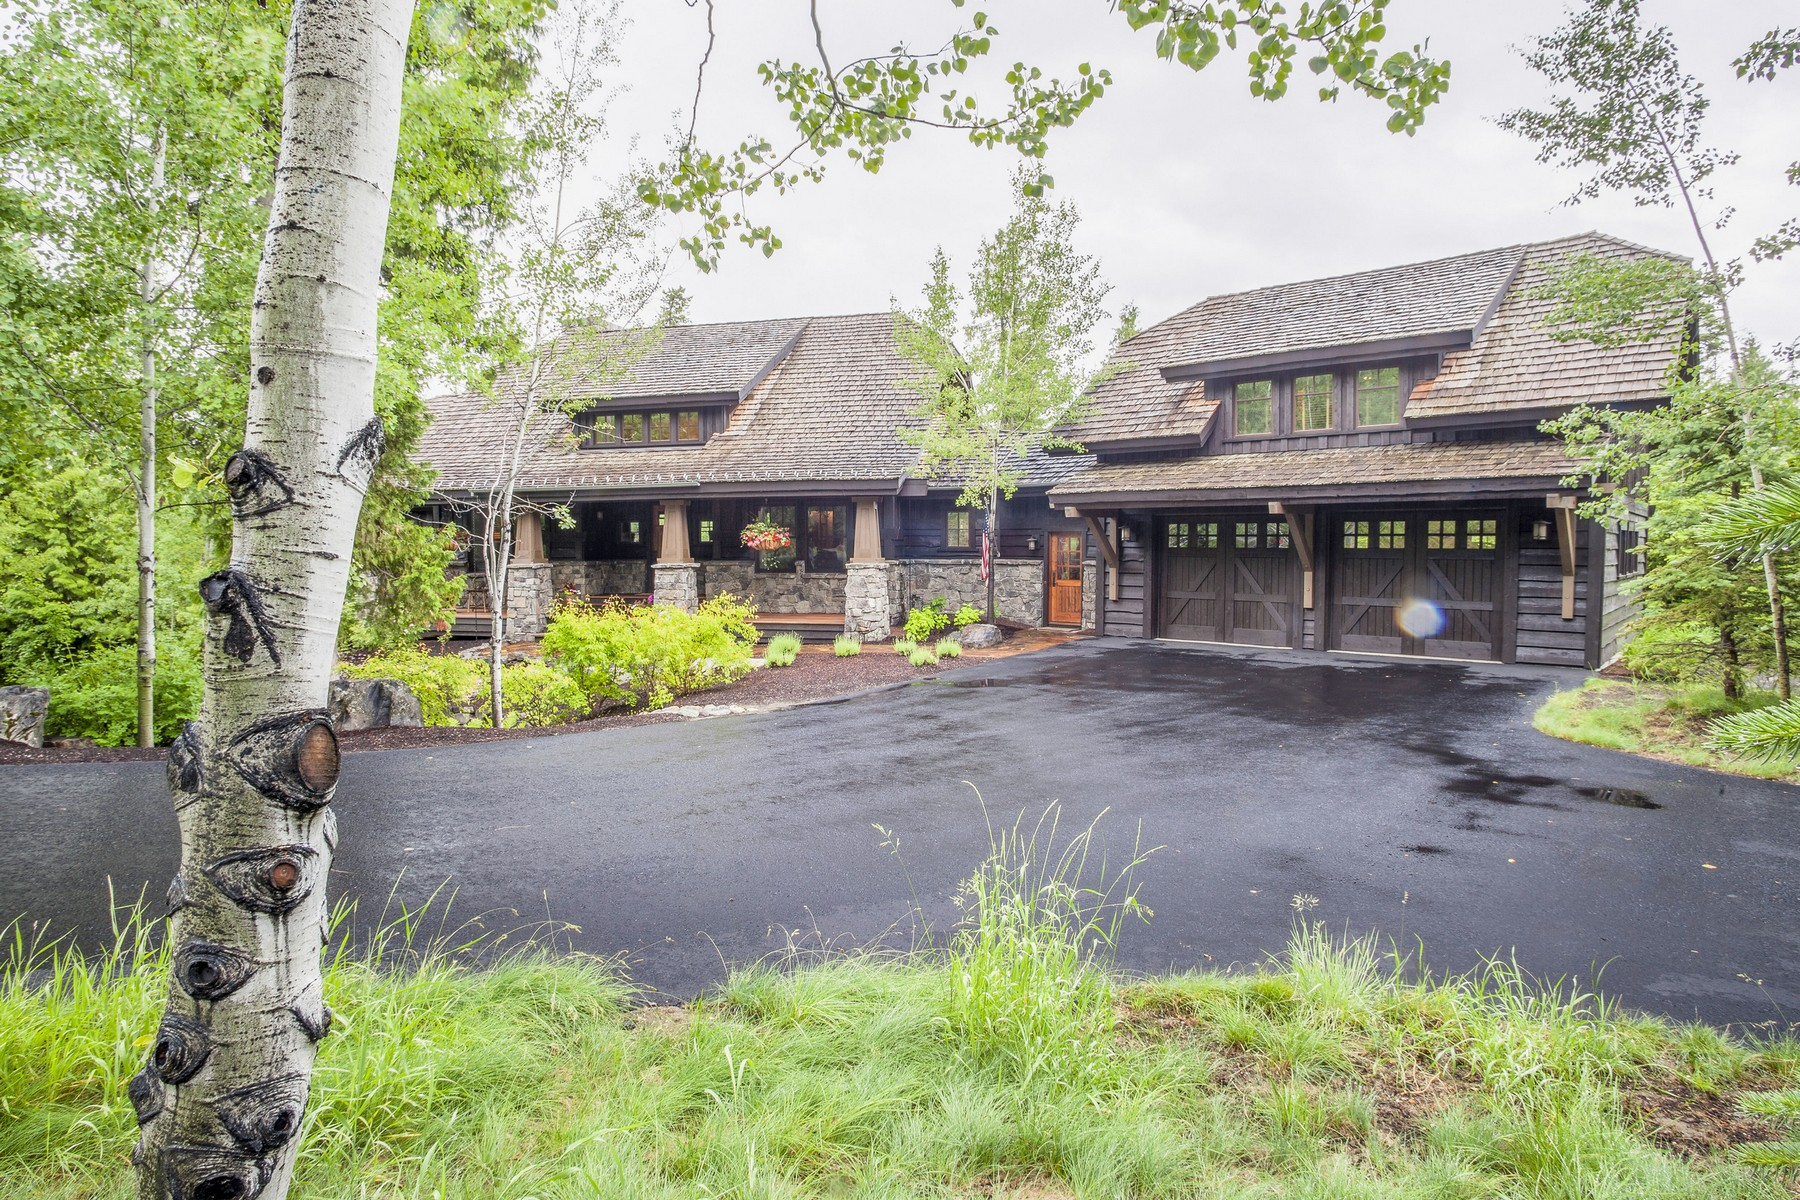 Moradia para Venda às Beautiful Home with Lush Grounds 177 S Shooting Star Circle Iron Horse Golf Community, Whitefish, Montana 59937 Estados Unidos